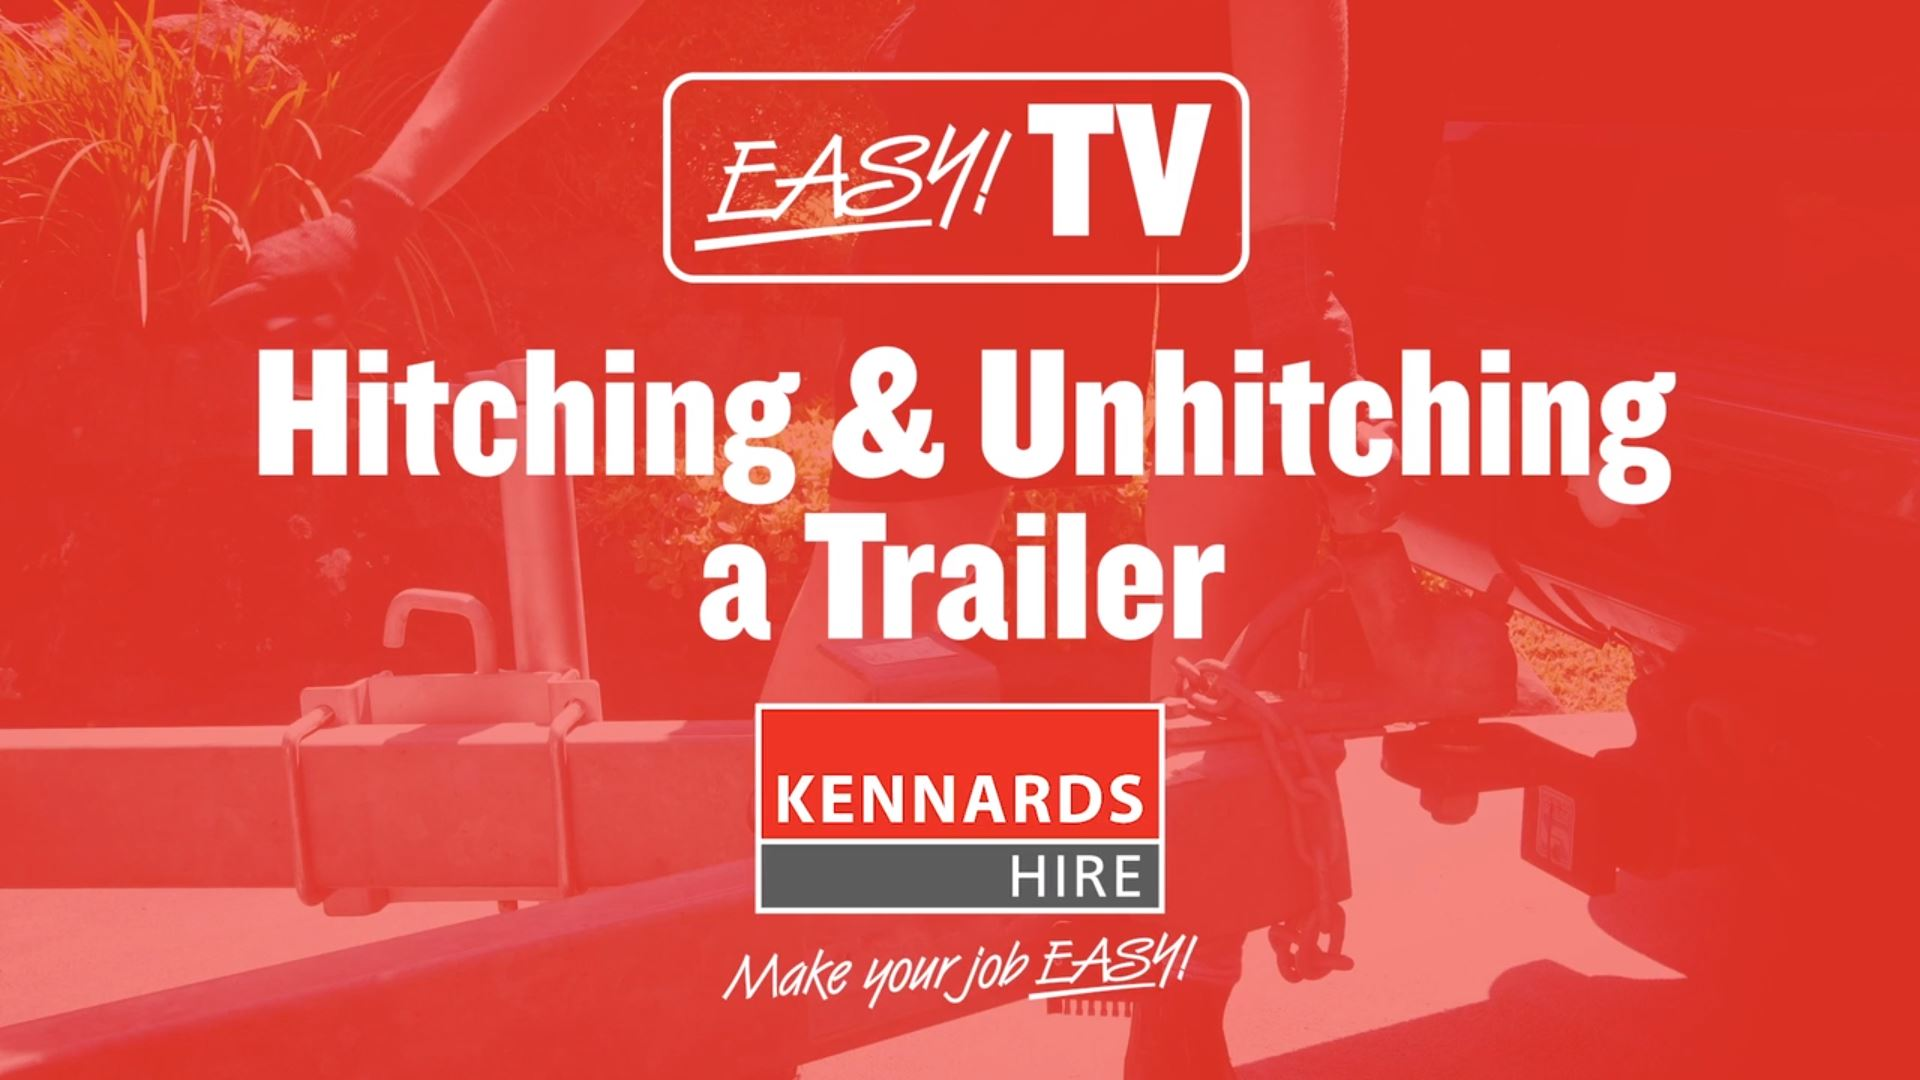 How to Hitch and Unhitch a Trailer